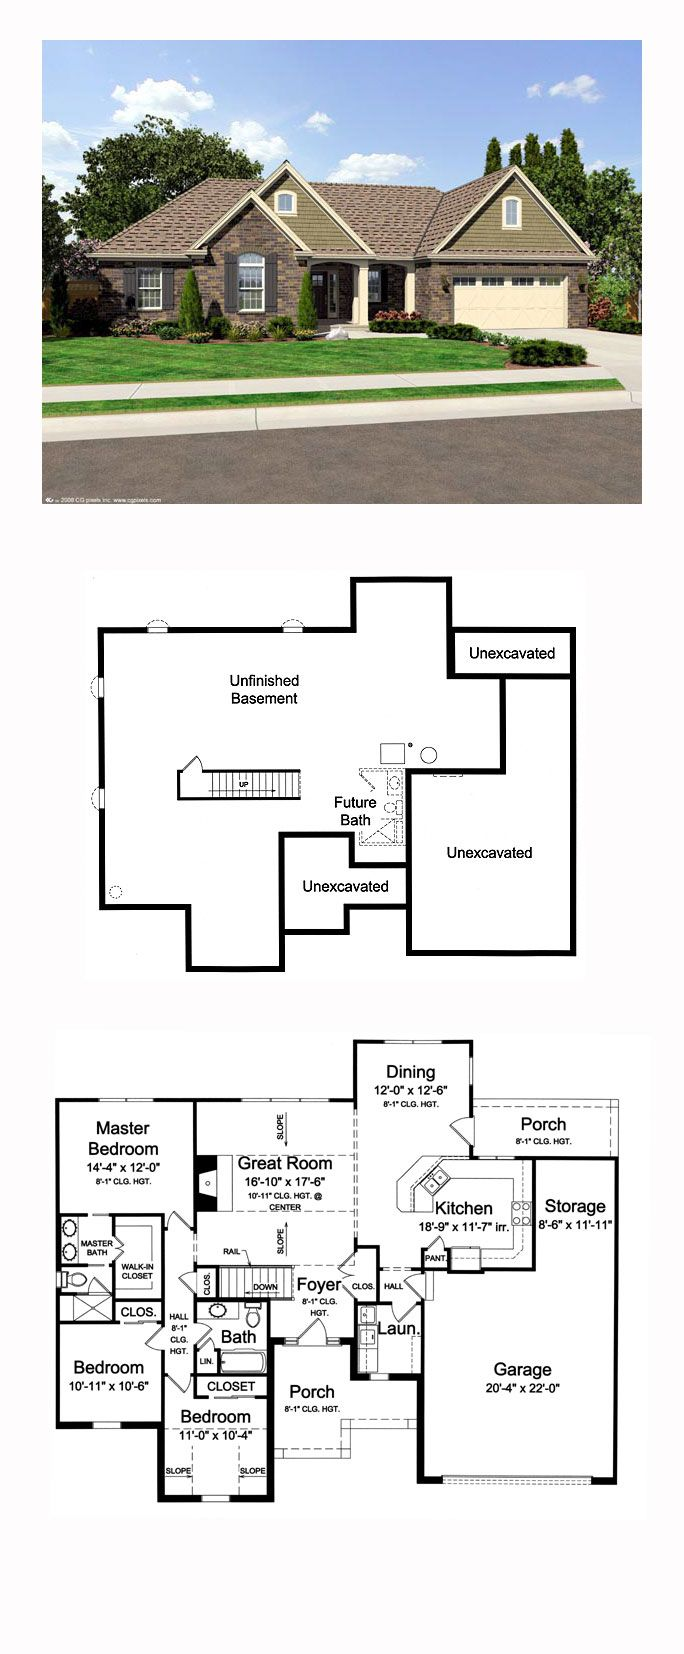 Country house plan 98638 total living area 1597 sq ft 3 bedrooms and 2 bathrooms countryhome